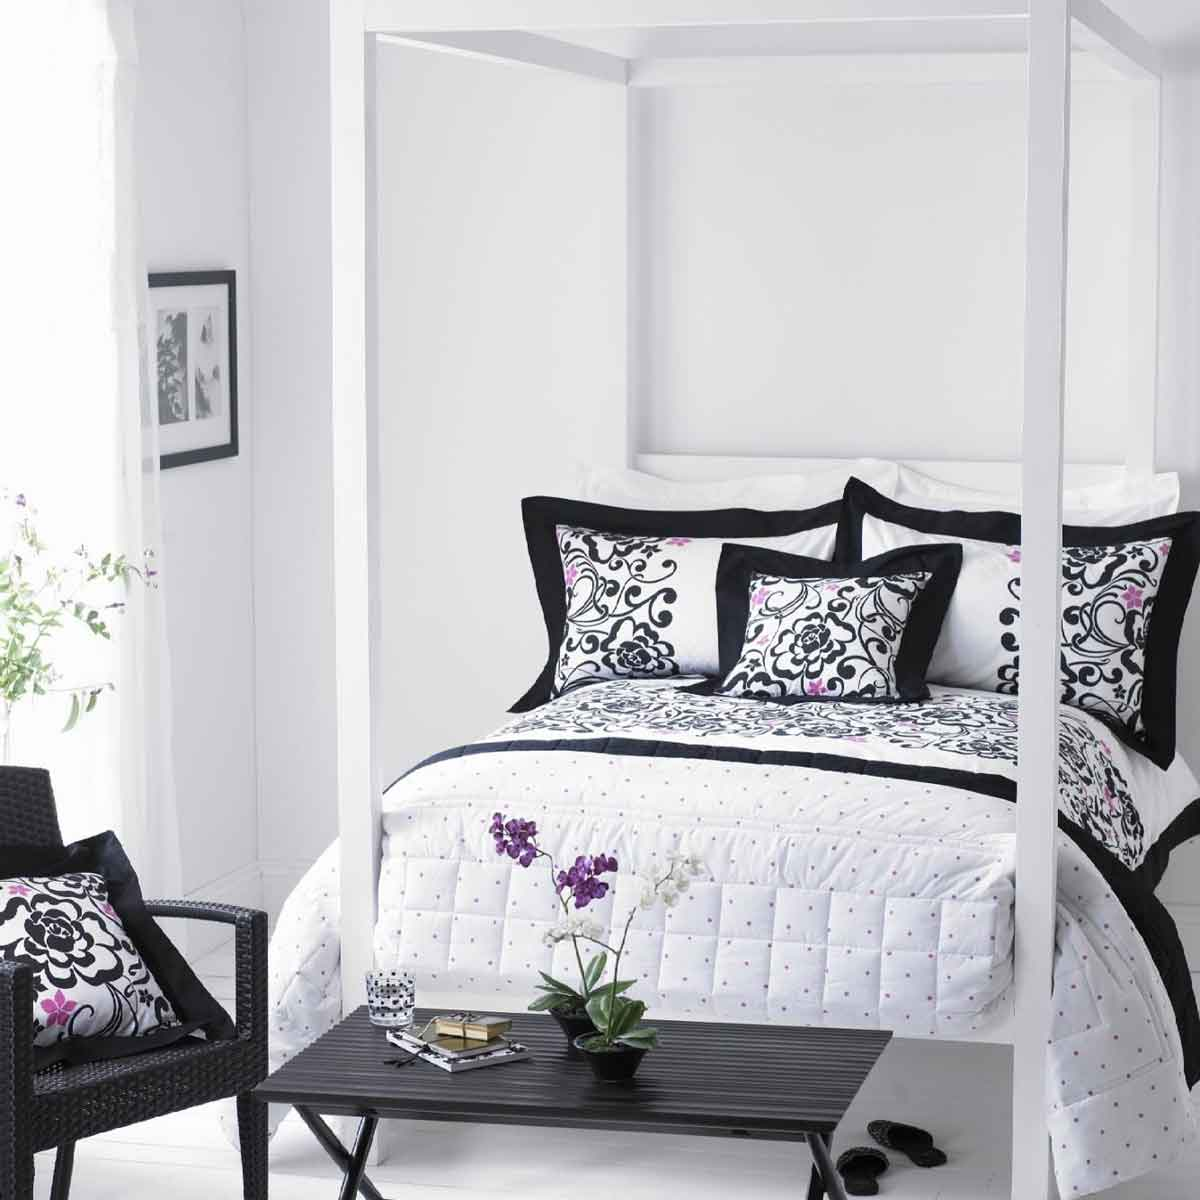 Modern black and white bedroom ideas Black and white room designs